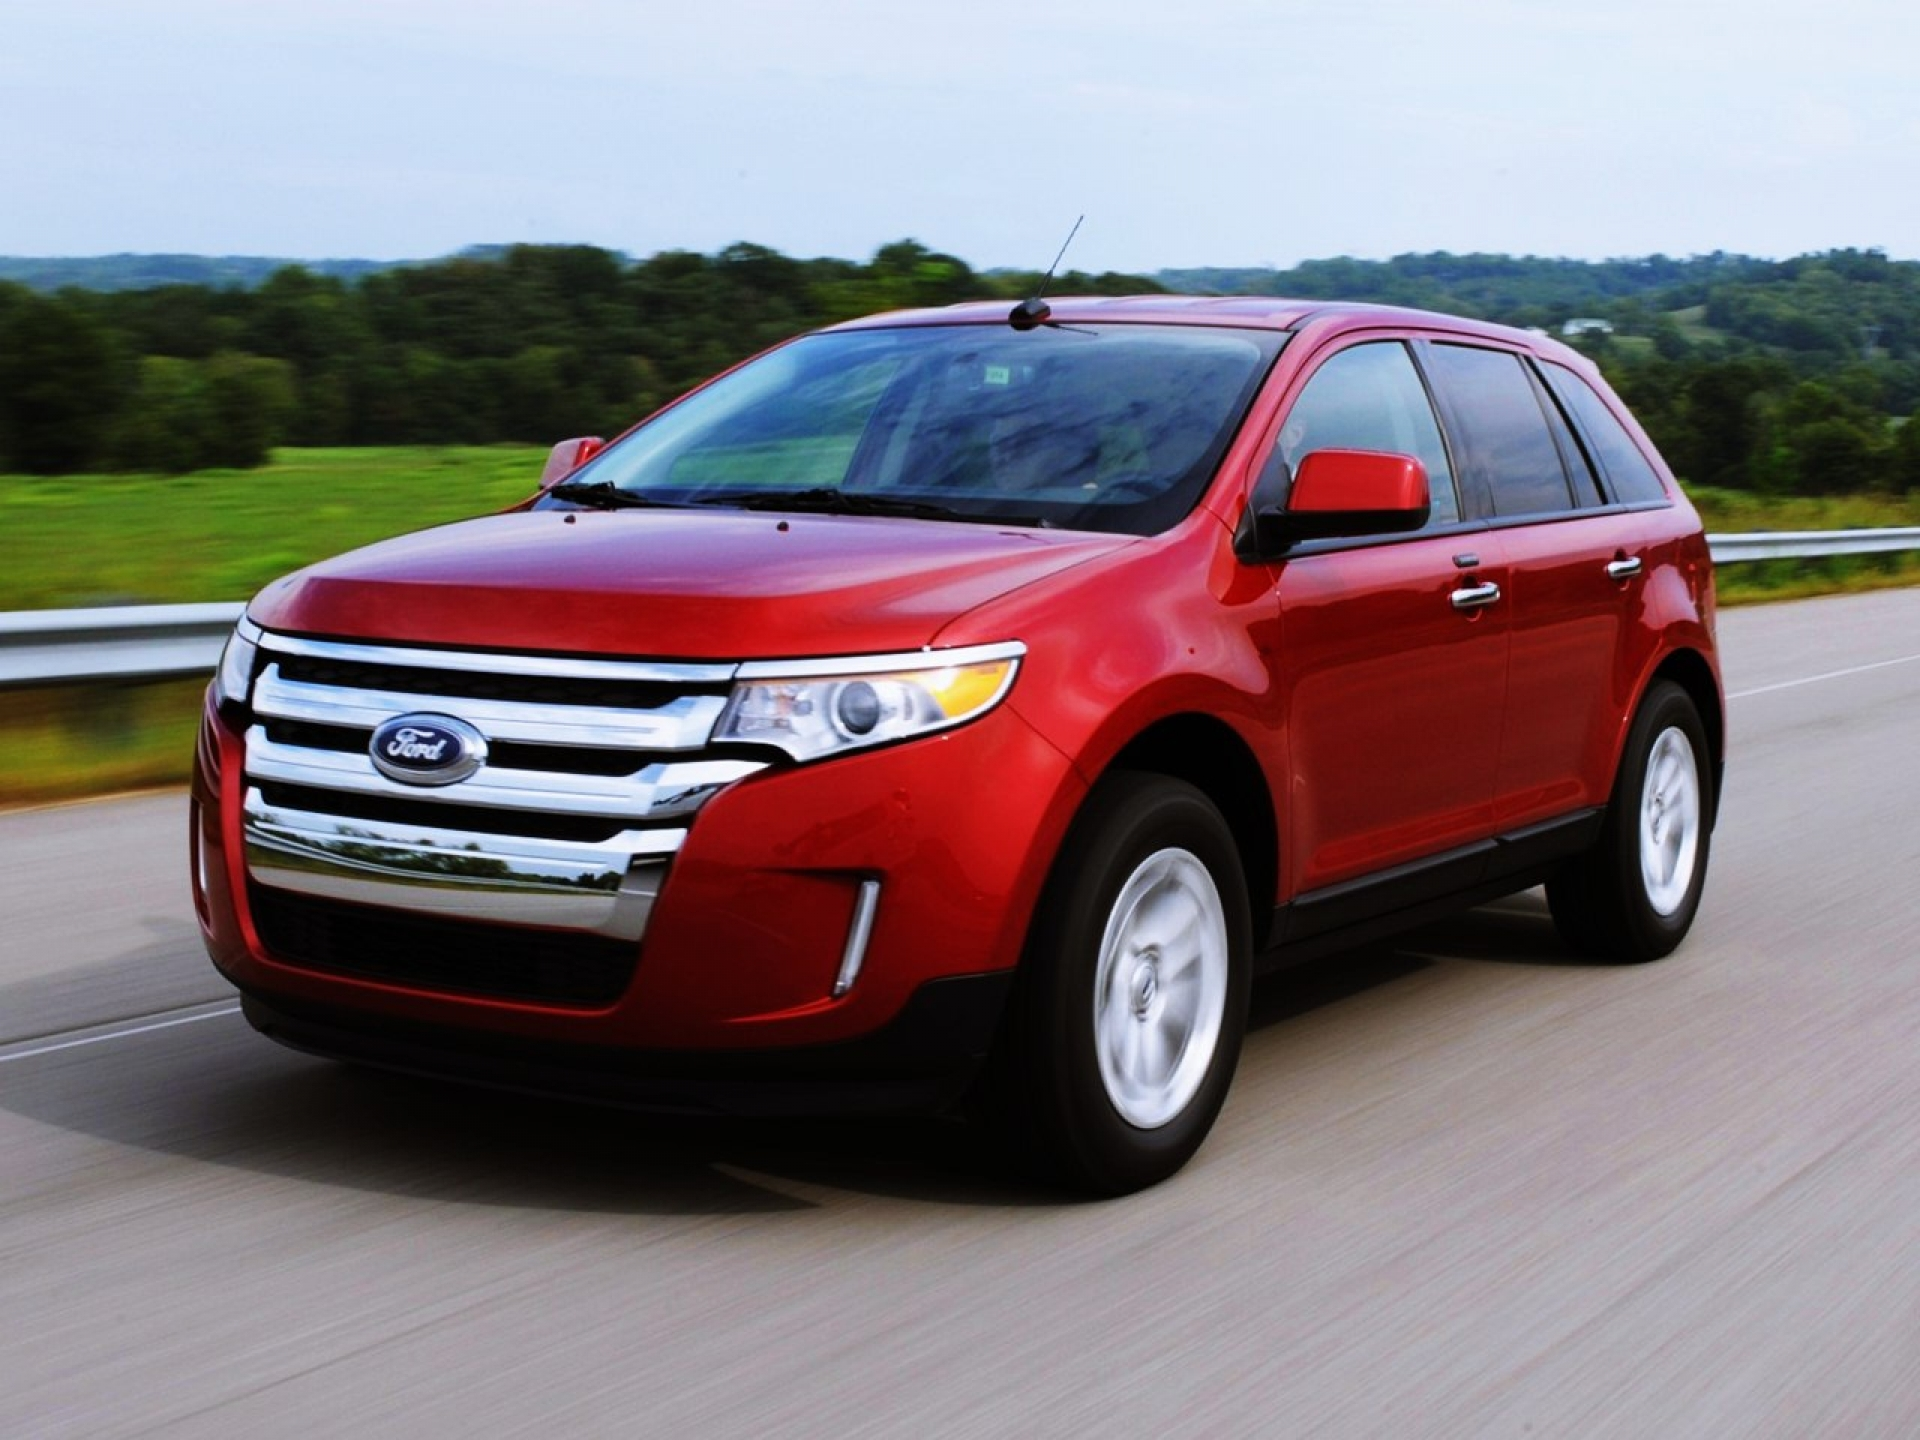 2013 Ford Edge Photos, Informations, Articles - BestCarMag.com